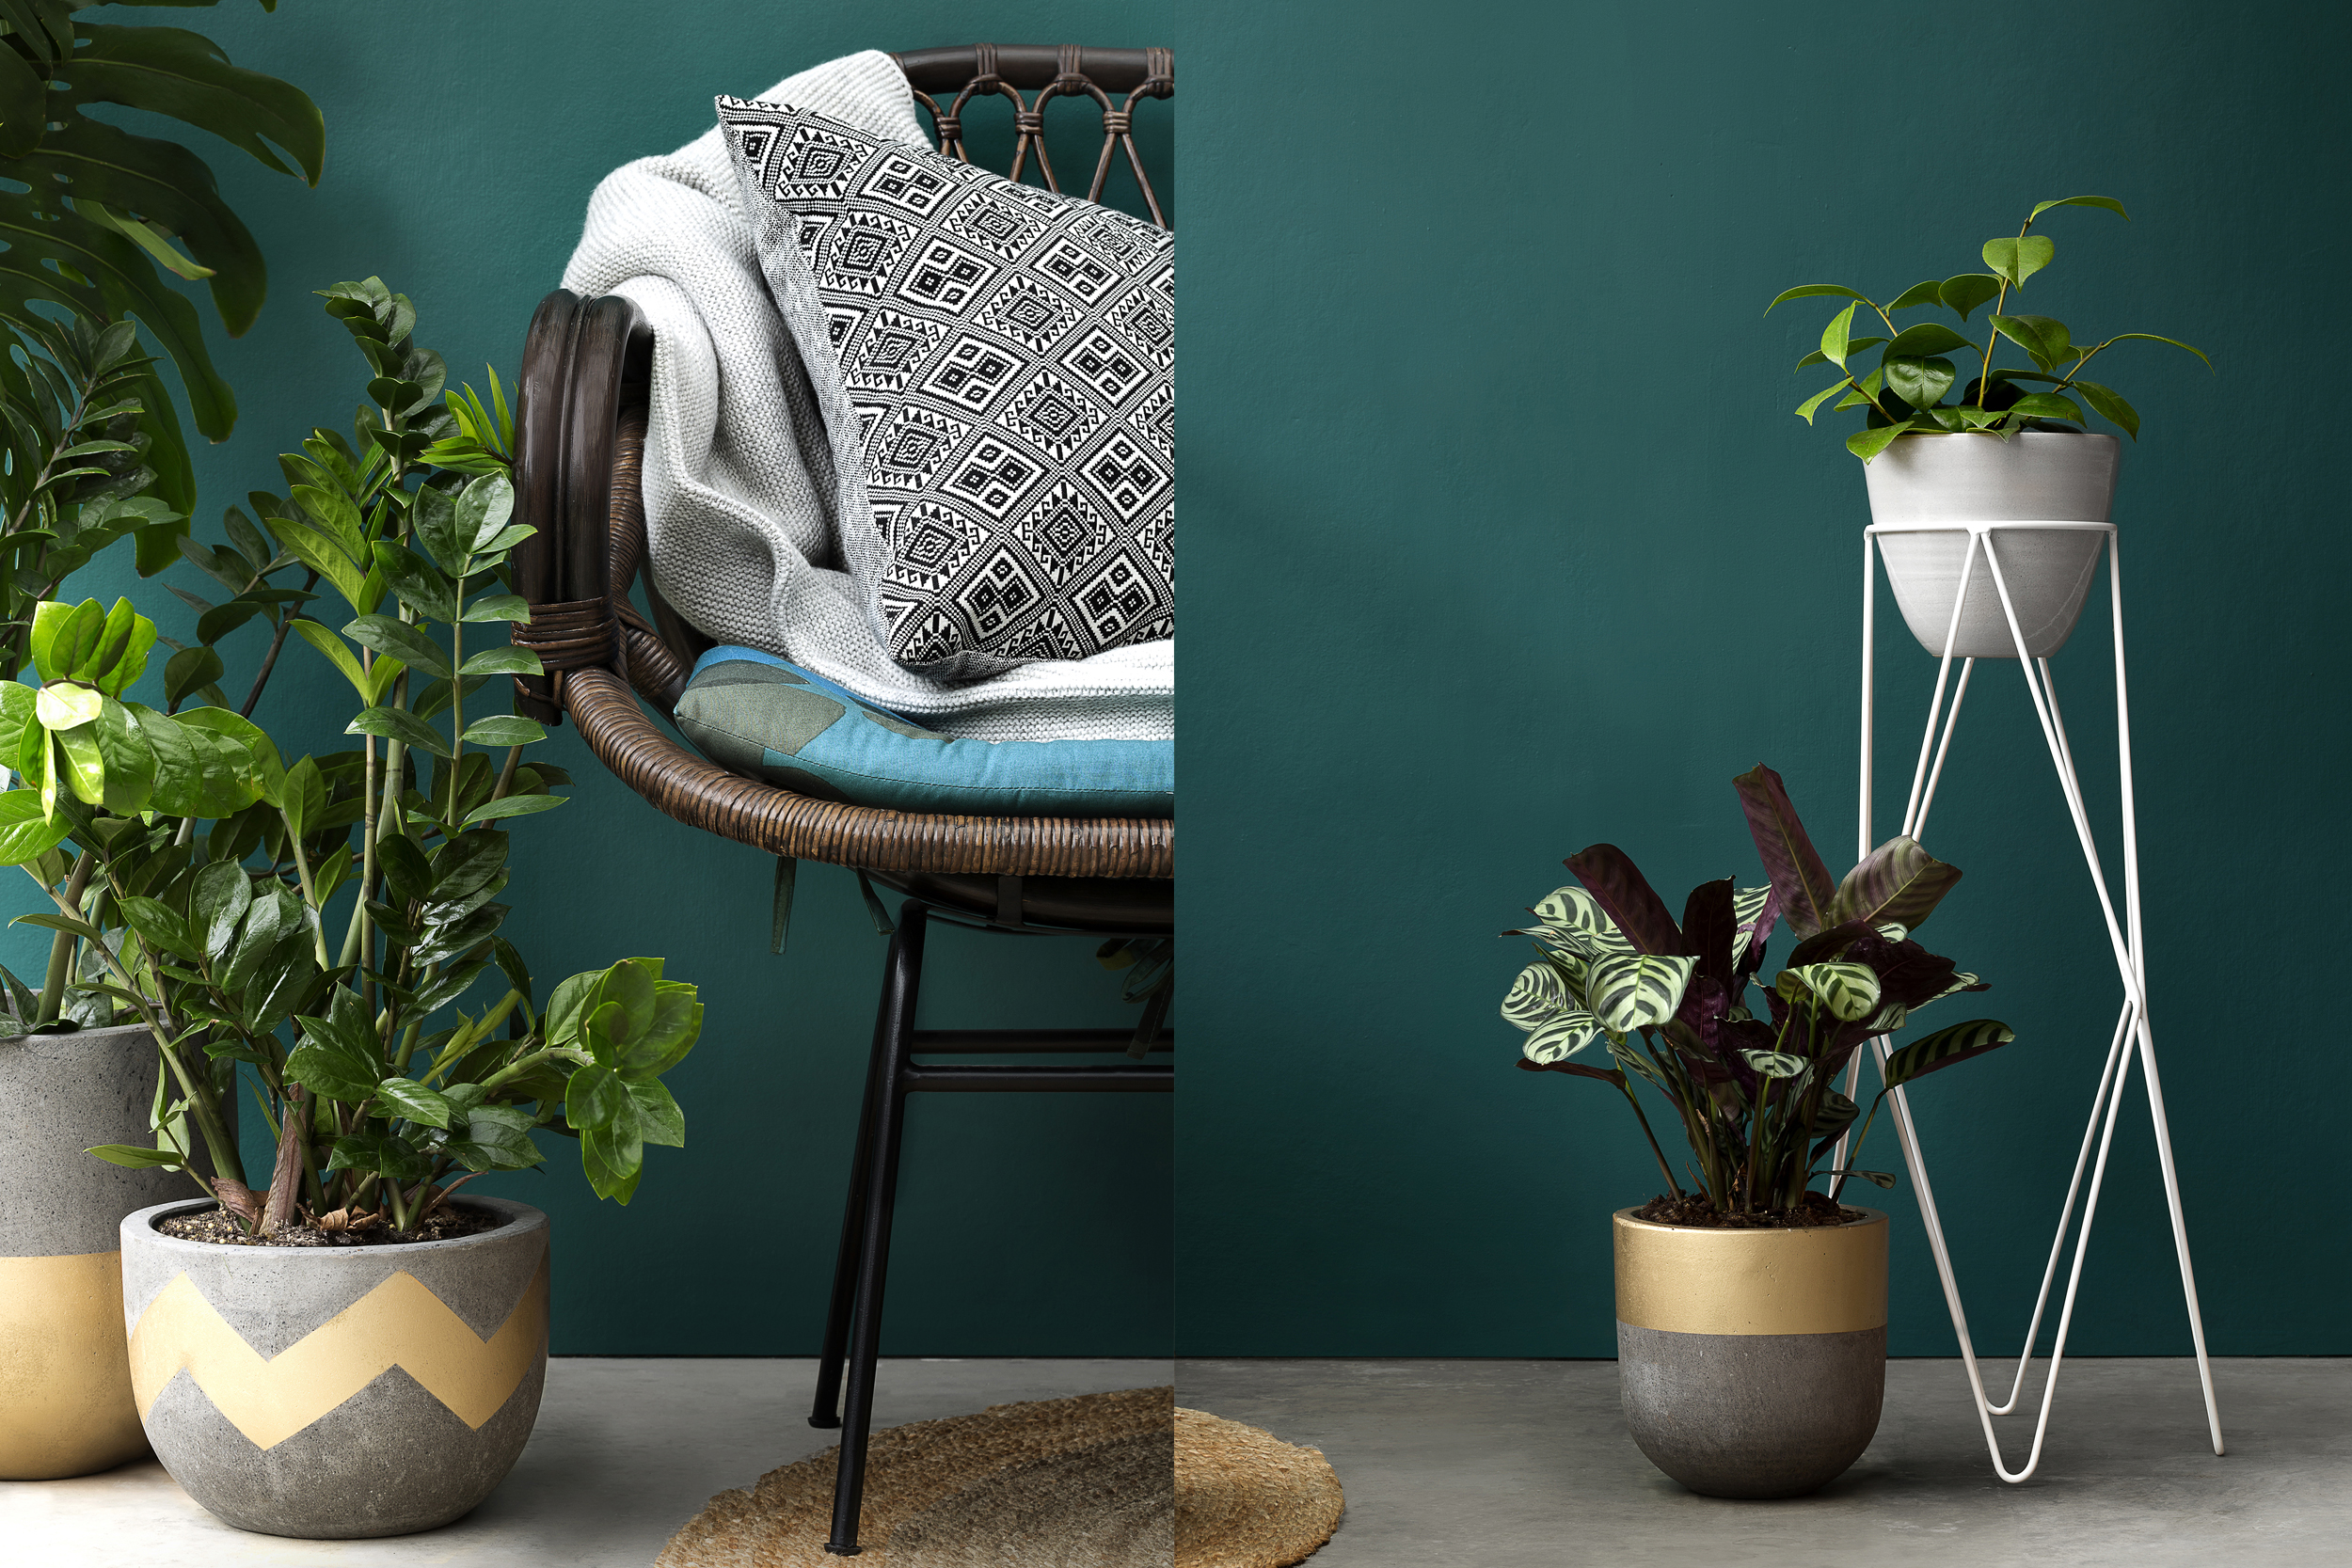 Pots from  Fenton & Fenton , Rug from   Armadillo & Co , couch from  The Family Love Tree , Mikmax throw rug from  Basic Habitat ,Cushion from the  Family Love Tree , plant stand from  Ivy Muse .